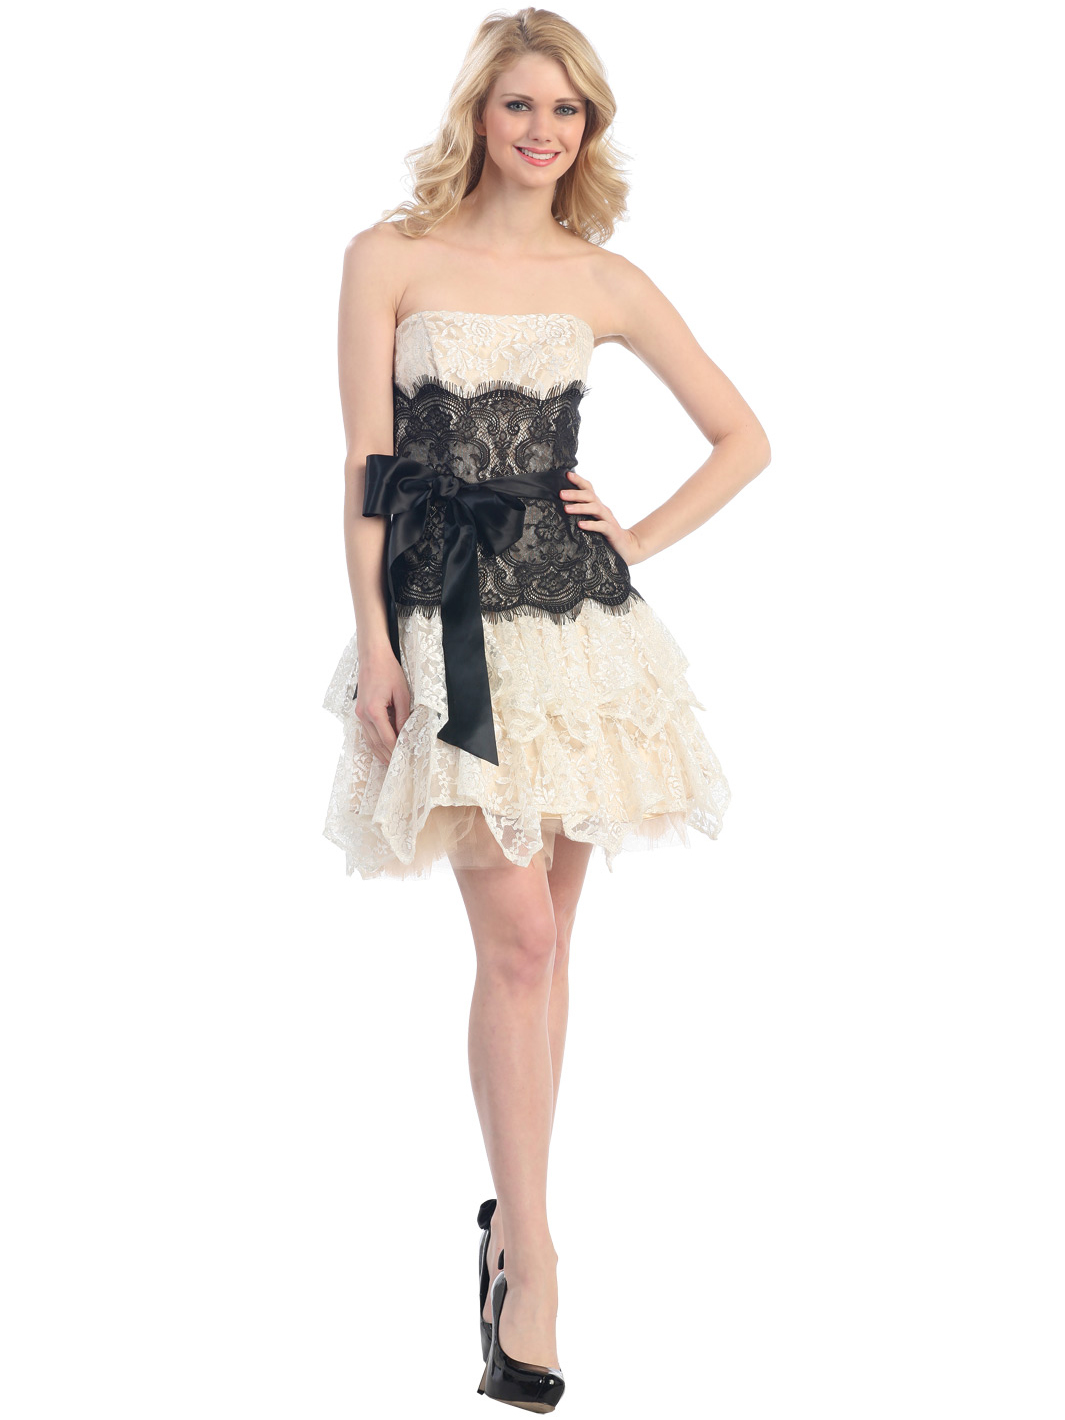 Lace Semi Formal Cocktail Dress Sung Boutique La